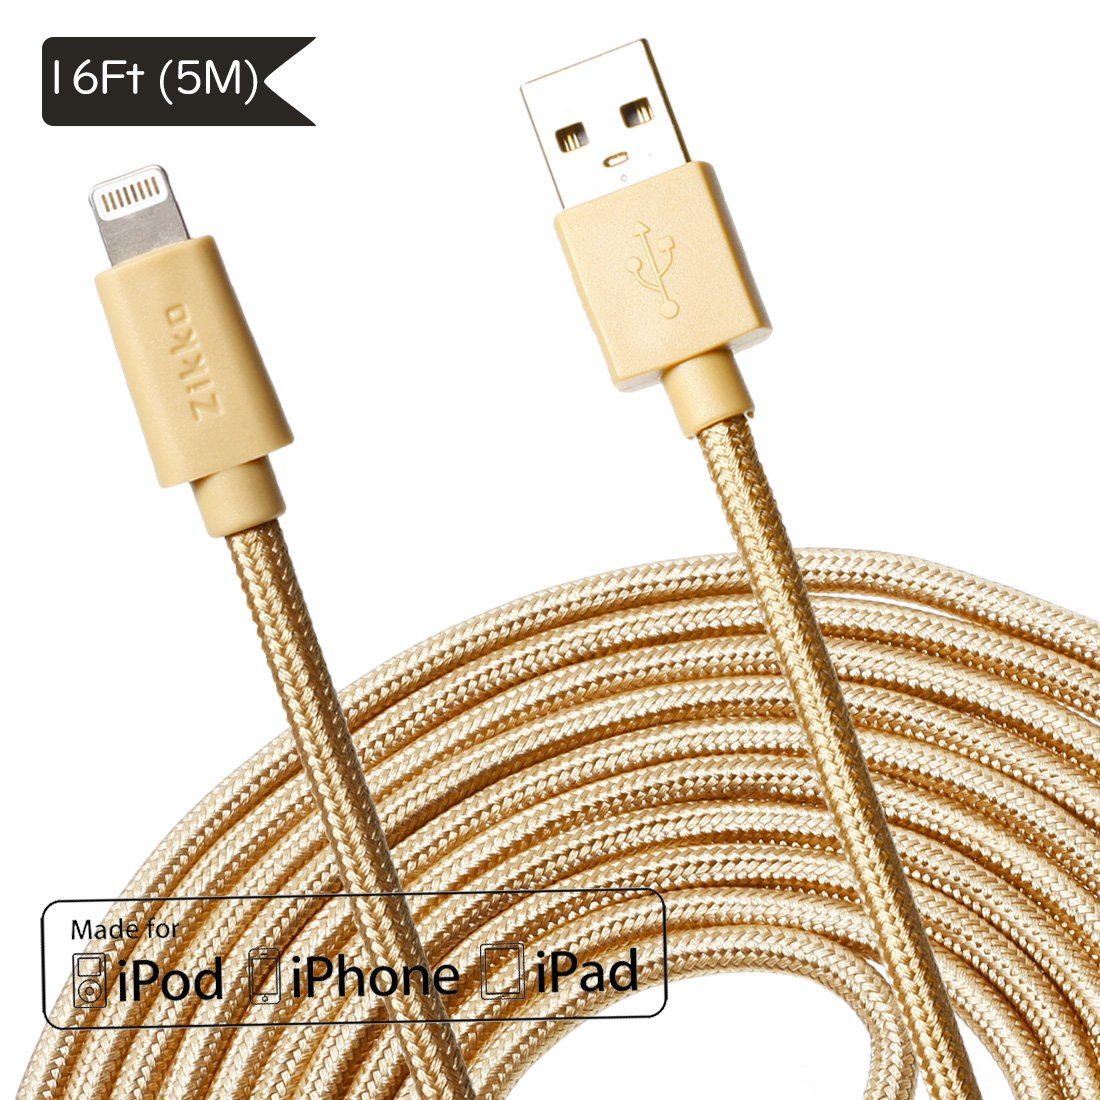 Zikko Et Lightning To Usb Cable Spec Dan Daftar Harga Terbaru Belkin Premium 15cm Black F8j144 Long 16ft 5m Mfi Certified 24a Charge And Sync Nylon